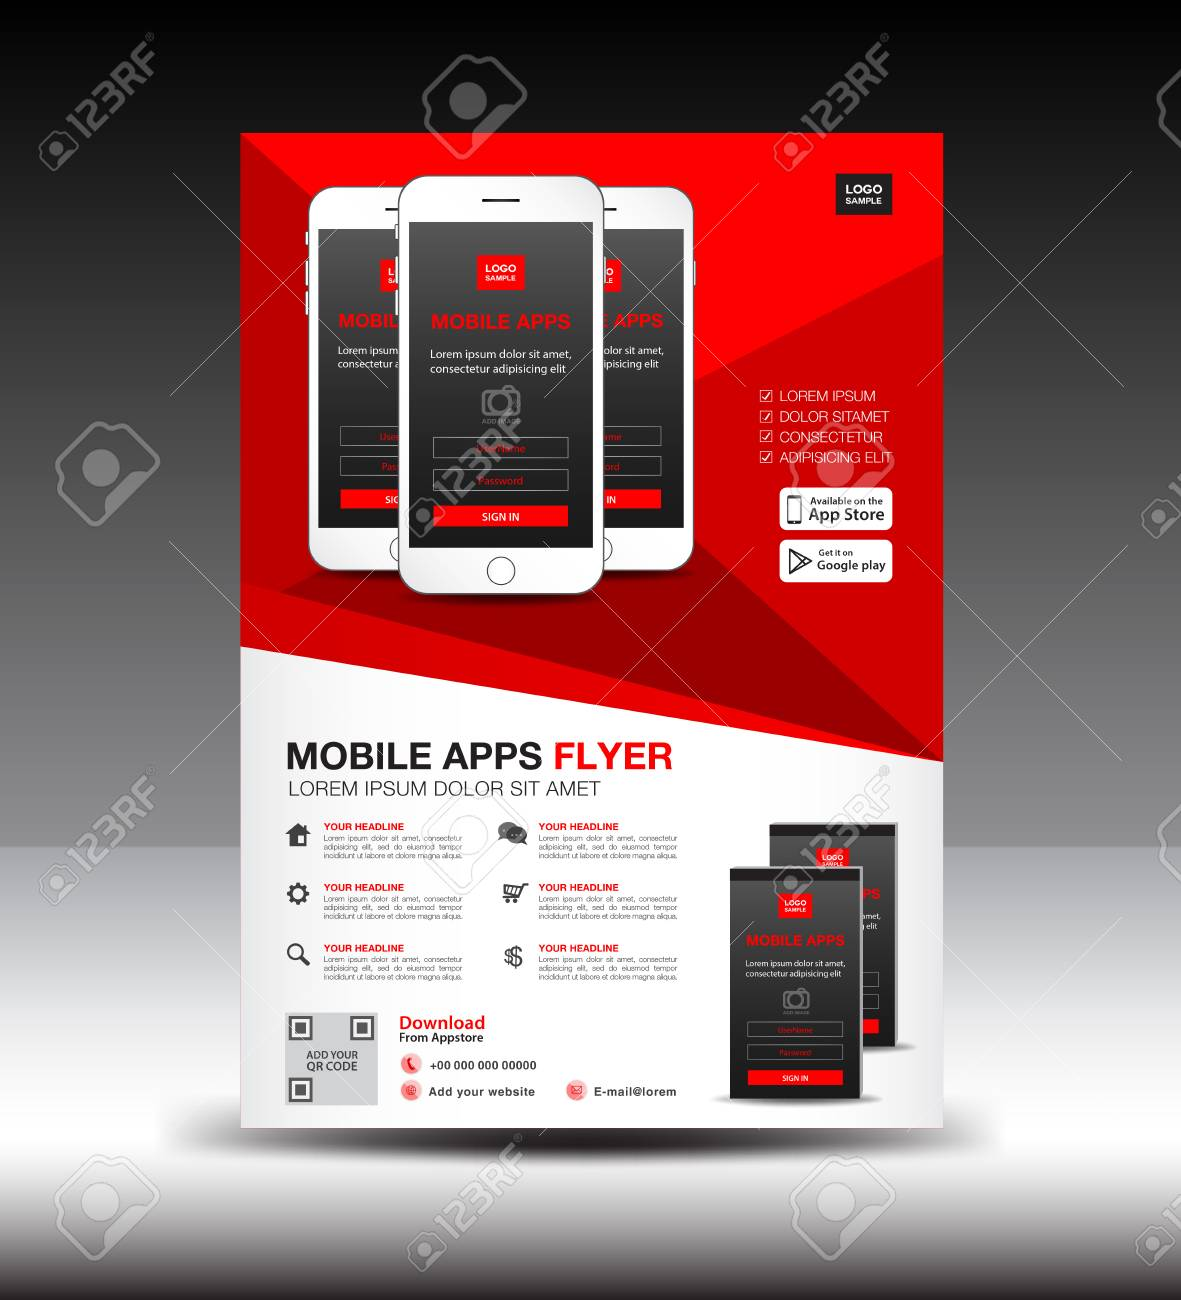 mobile apps flyer template royalty free cliparts vectors and